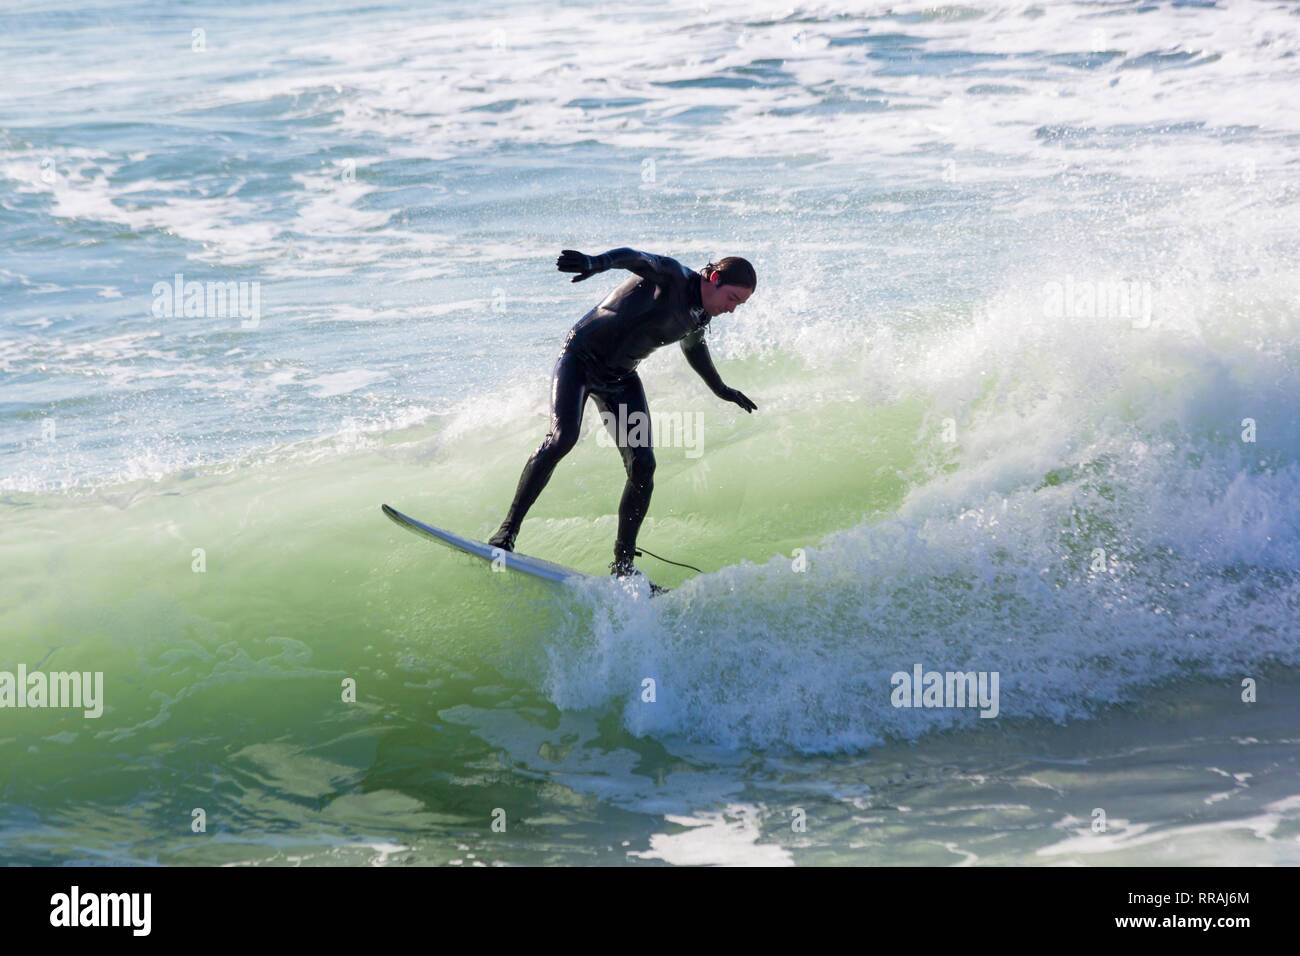 Bournemouth, Dorset, UK. 25th Feb, 2019. UK weather: big waves and plenty of surf create ideal surfing conditions for surfers at Bournemouth beach on a lovely warm sunny day expected to be the hottest day of the year and hottest February day ever.  Surfer on surf board riding the waves. Credit: Carolyn Jenkins/Alamy Live News - Stock Image